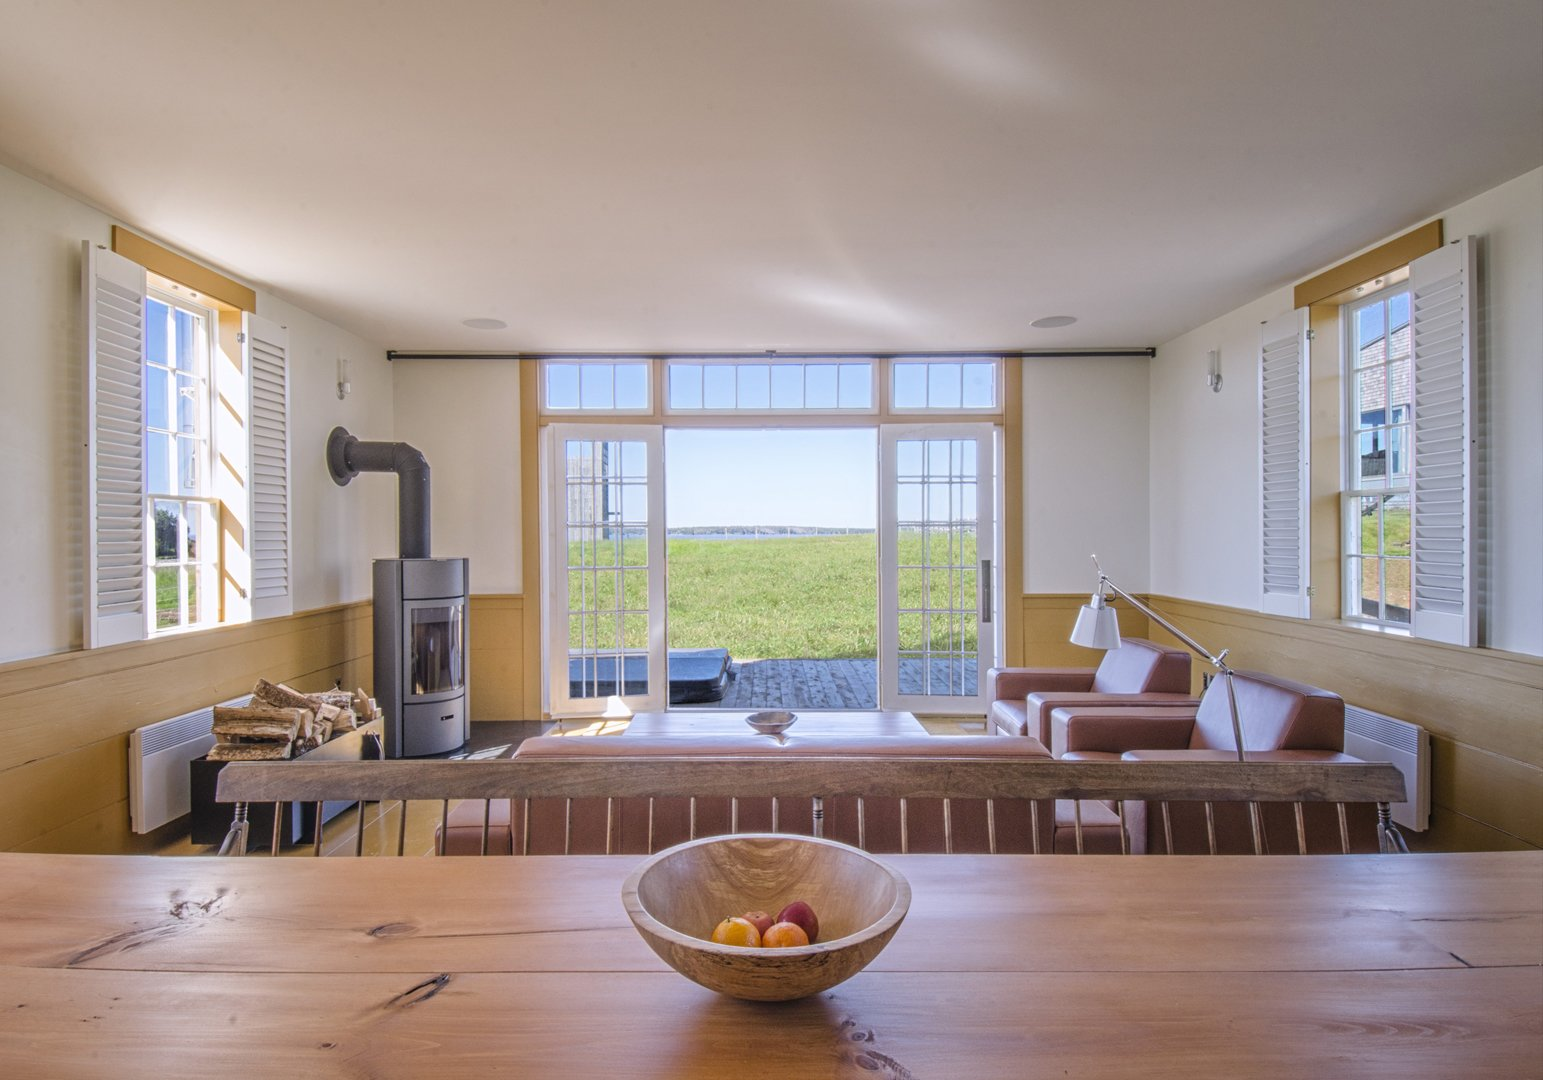 The open floor plan includes a kitchen with modern appliances, a half bath, and living and dining areas that open onto an outdoor terrace. A master bedroom and bunk room are upstairs along with a washer and dryer.  Photo 7 of 14 in Agrarian Pastime: Book a Village Stay in Nova Scotia